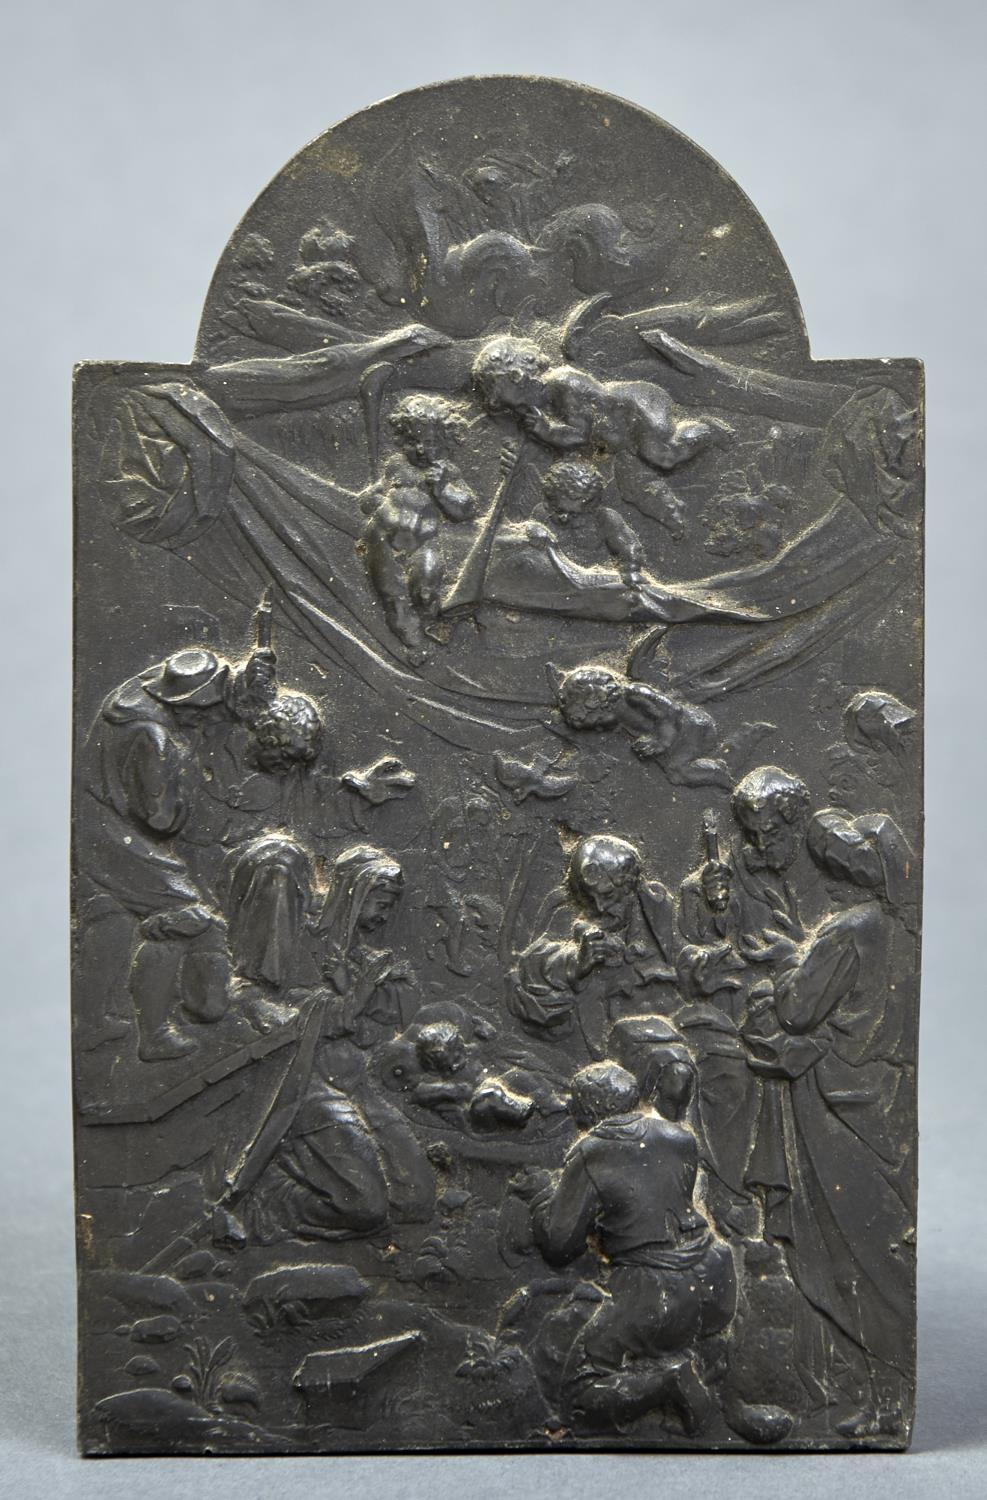 A CONTINENTAL PEWTER PLAQUETTE OF THE ADORATION OF THE SHEPHERDS, LATE 19TH C, 24 X 14.5CM Good